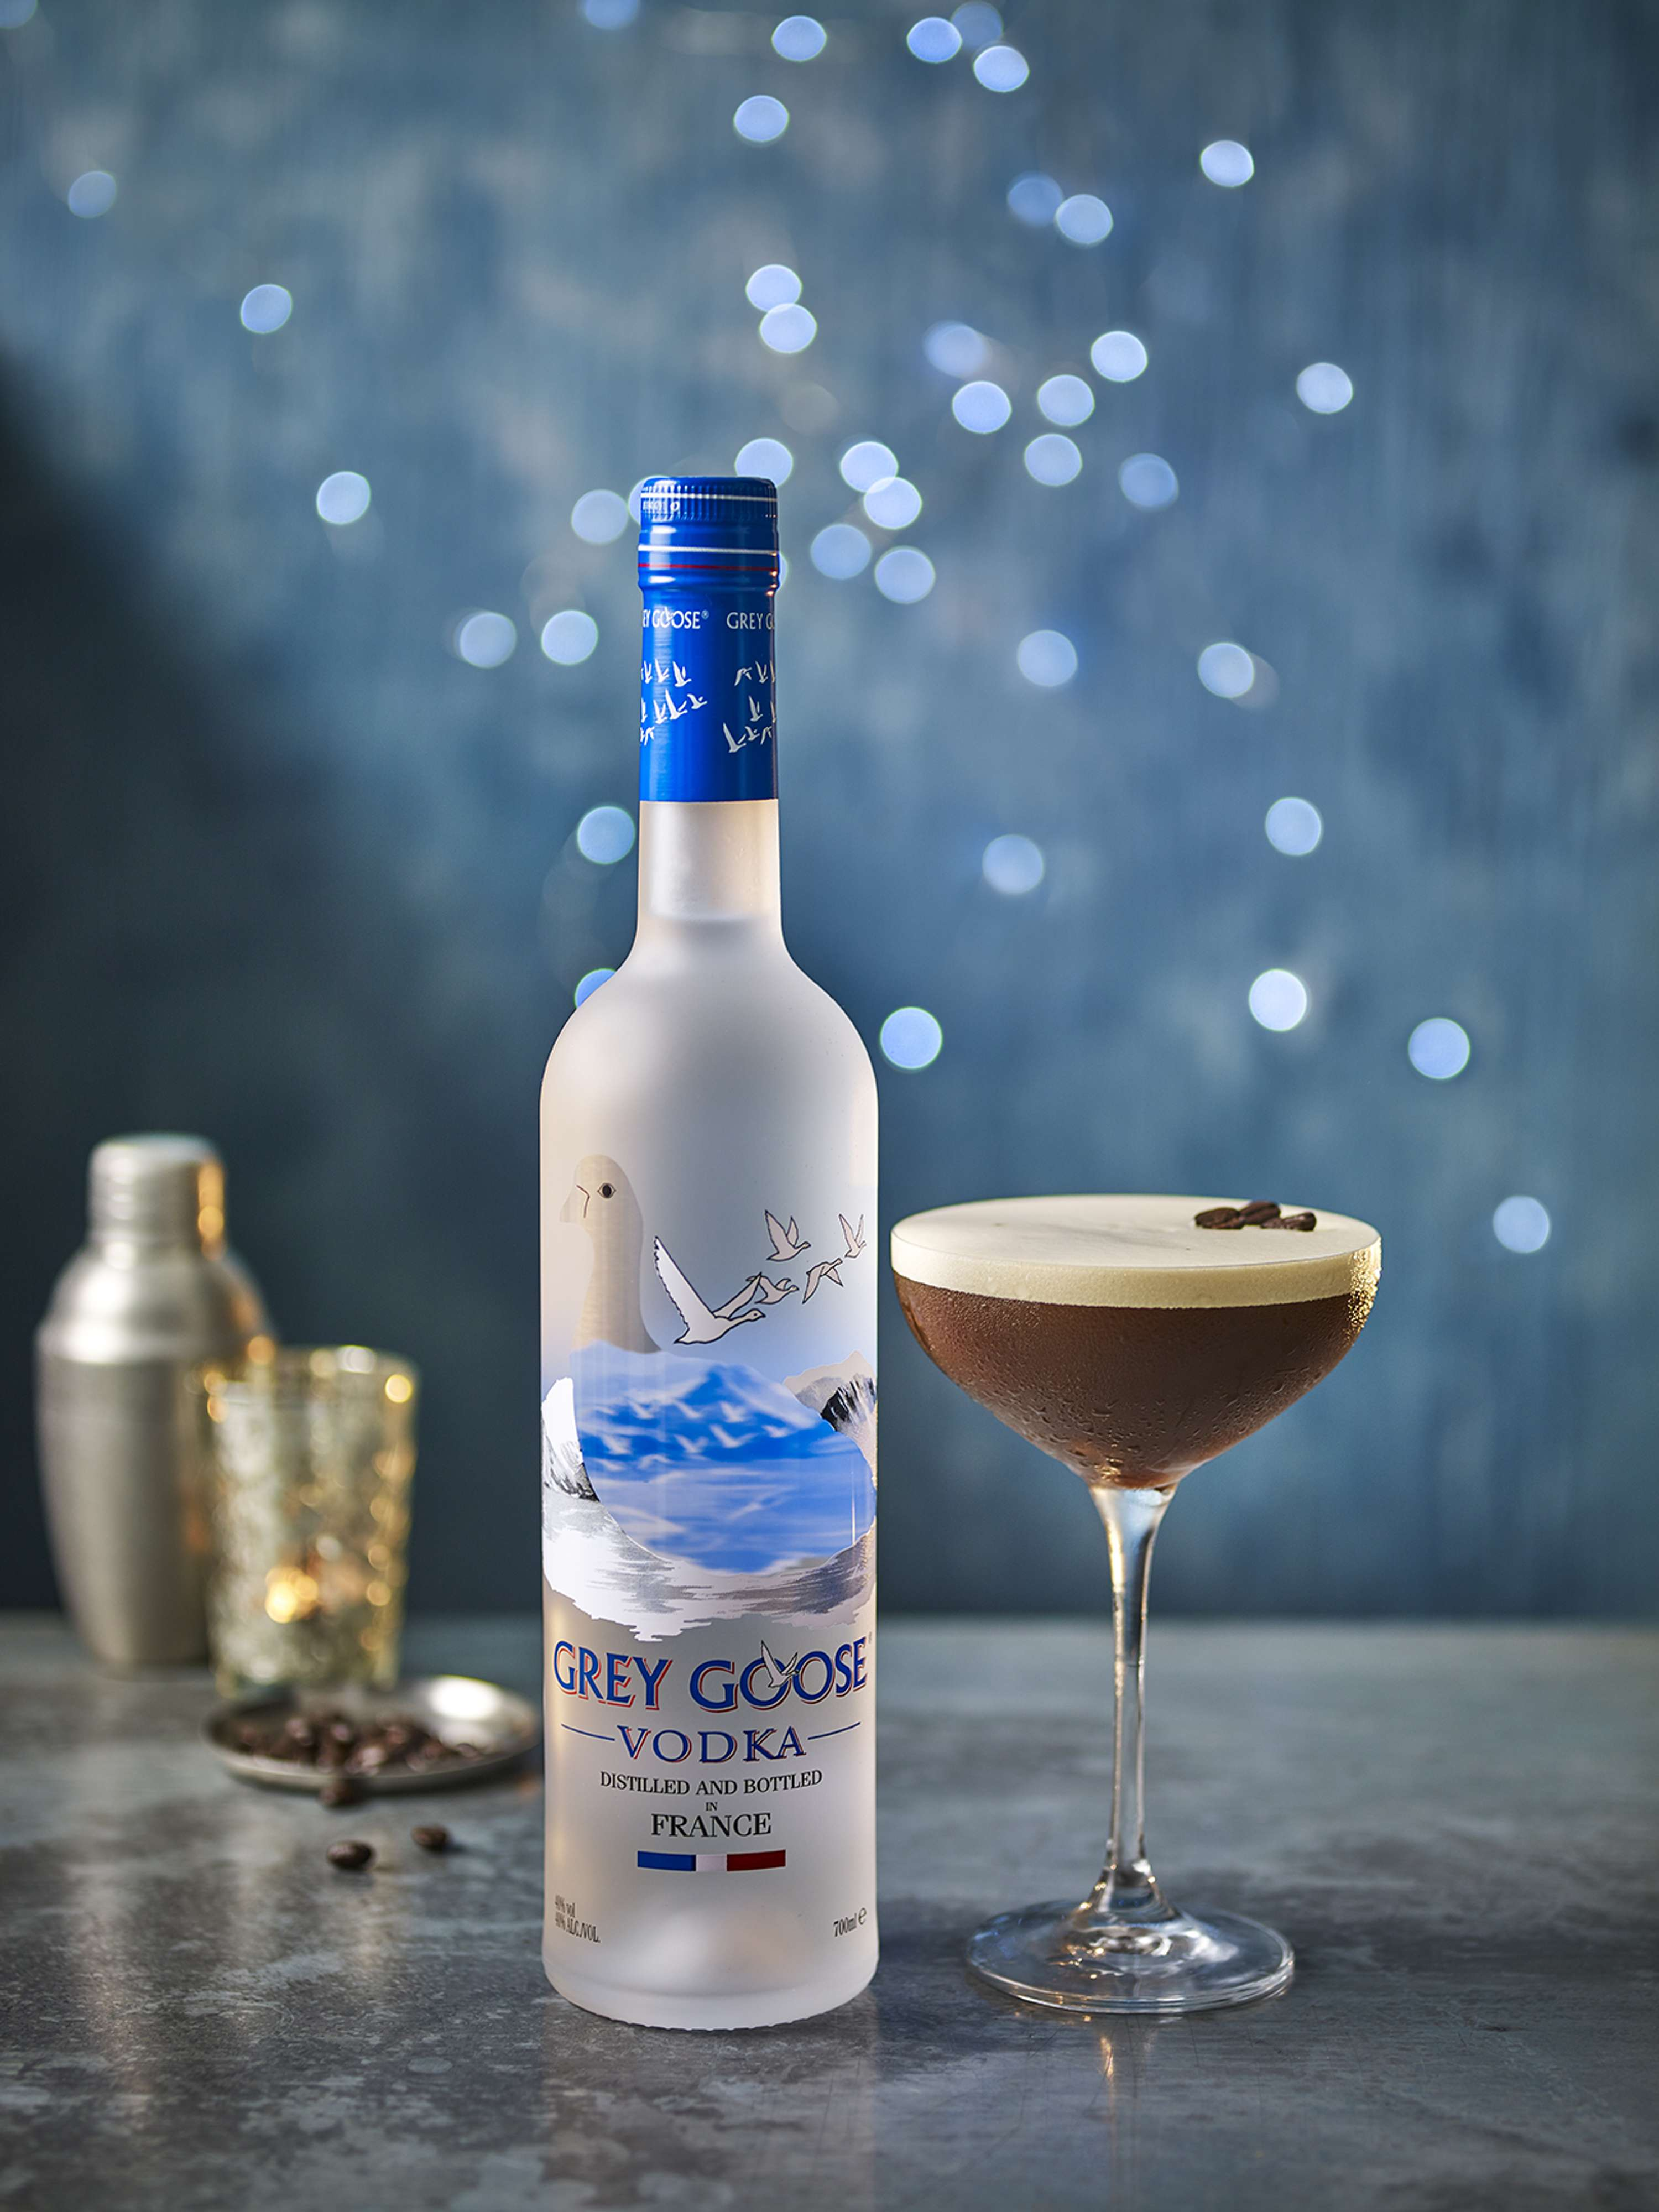 Christmas Drinks Alcohol.Tesco Christmas Drinks Content The Dots